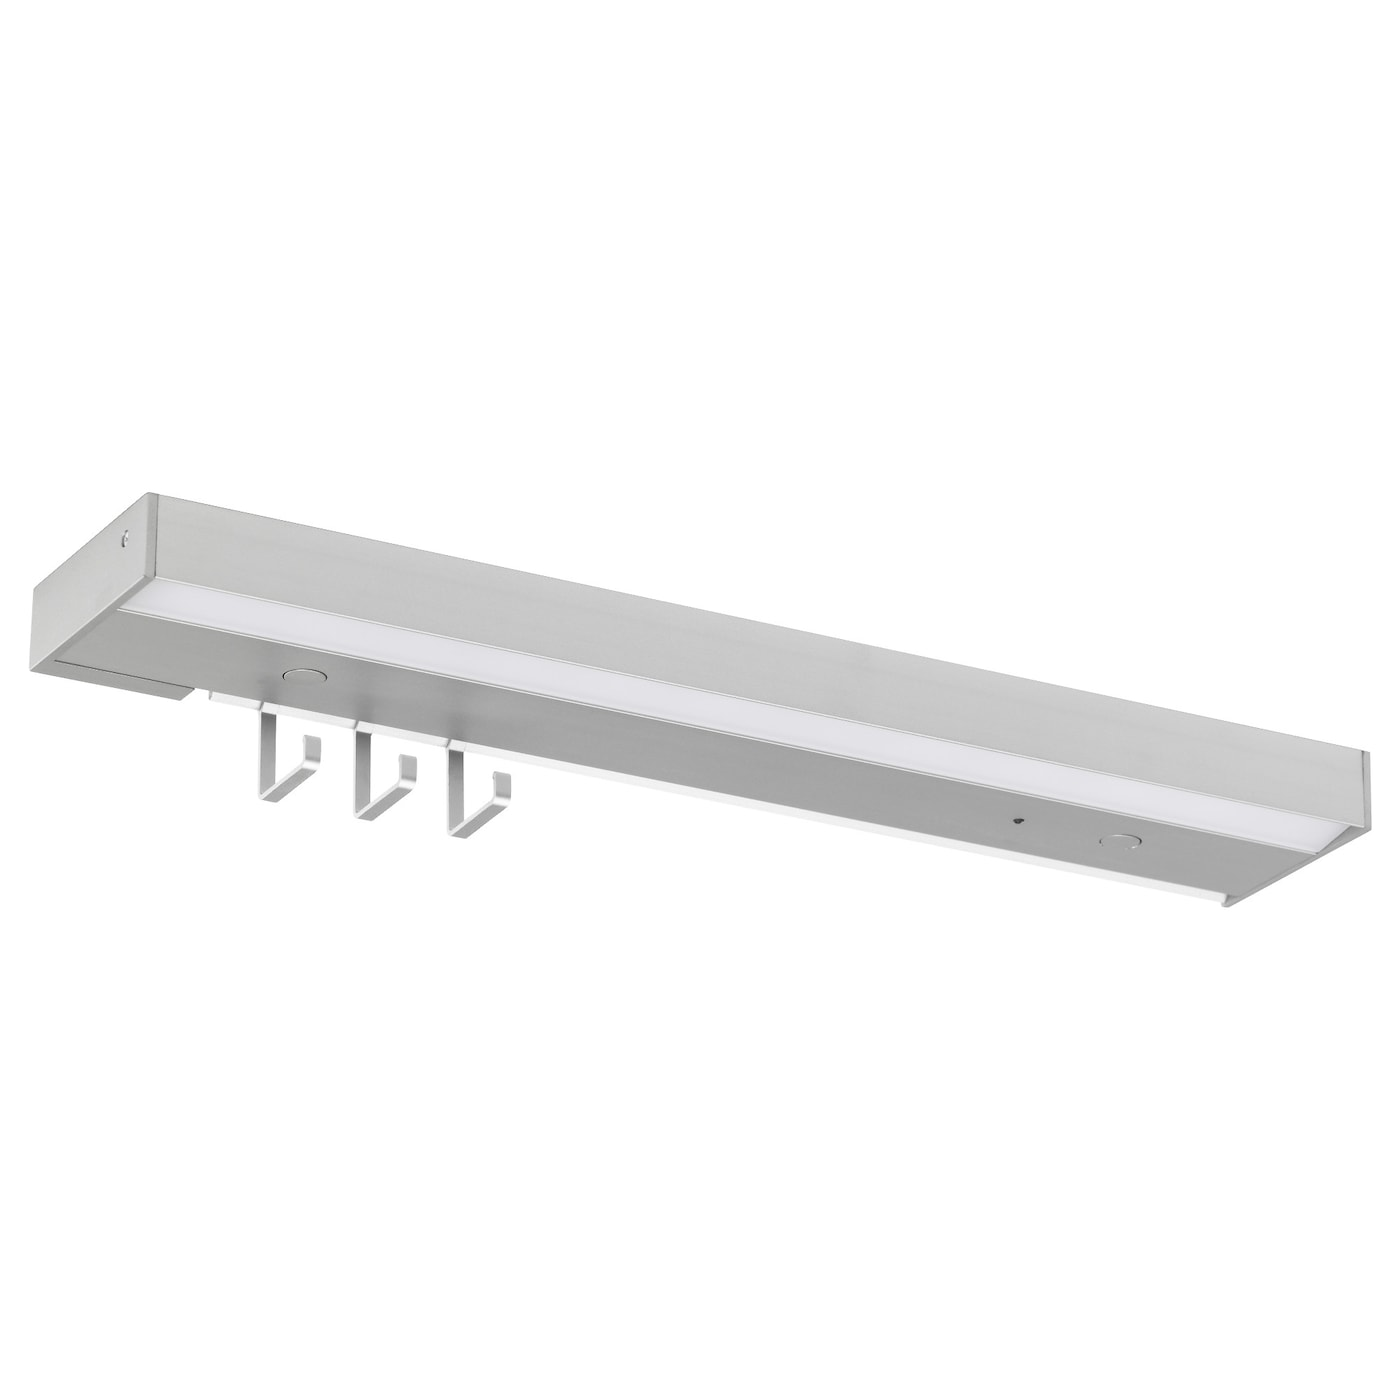 IKEA UTRUSTA LED worktop lighting w power supply